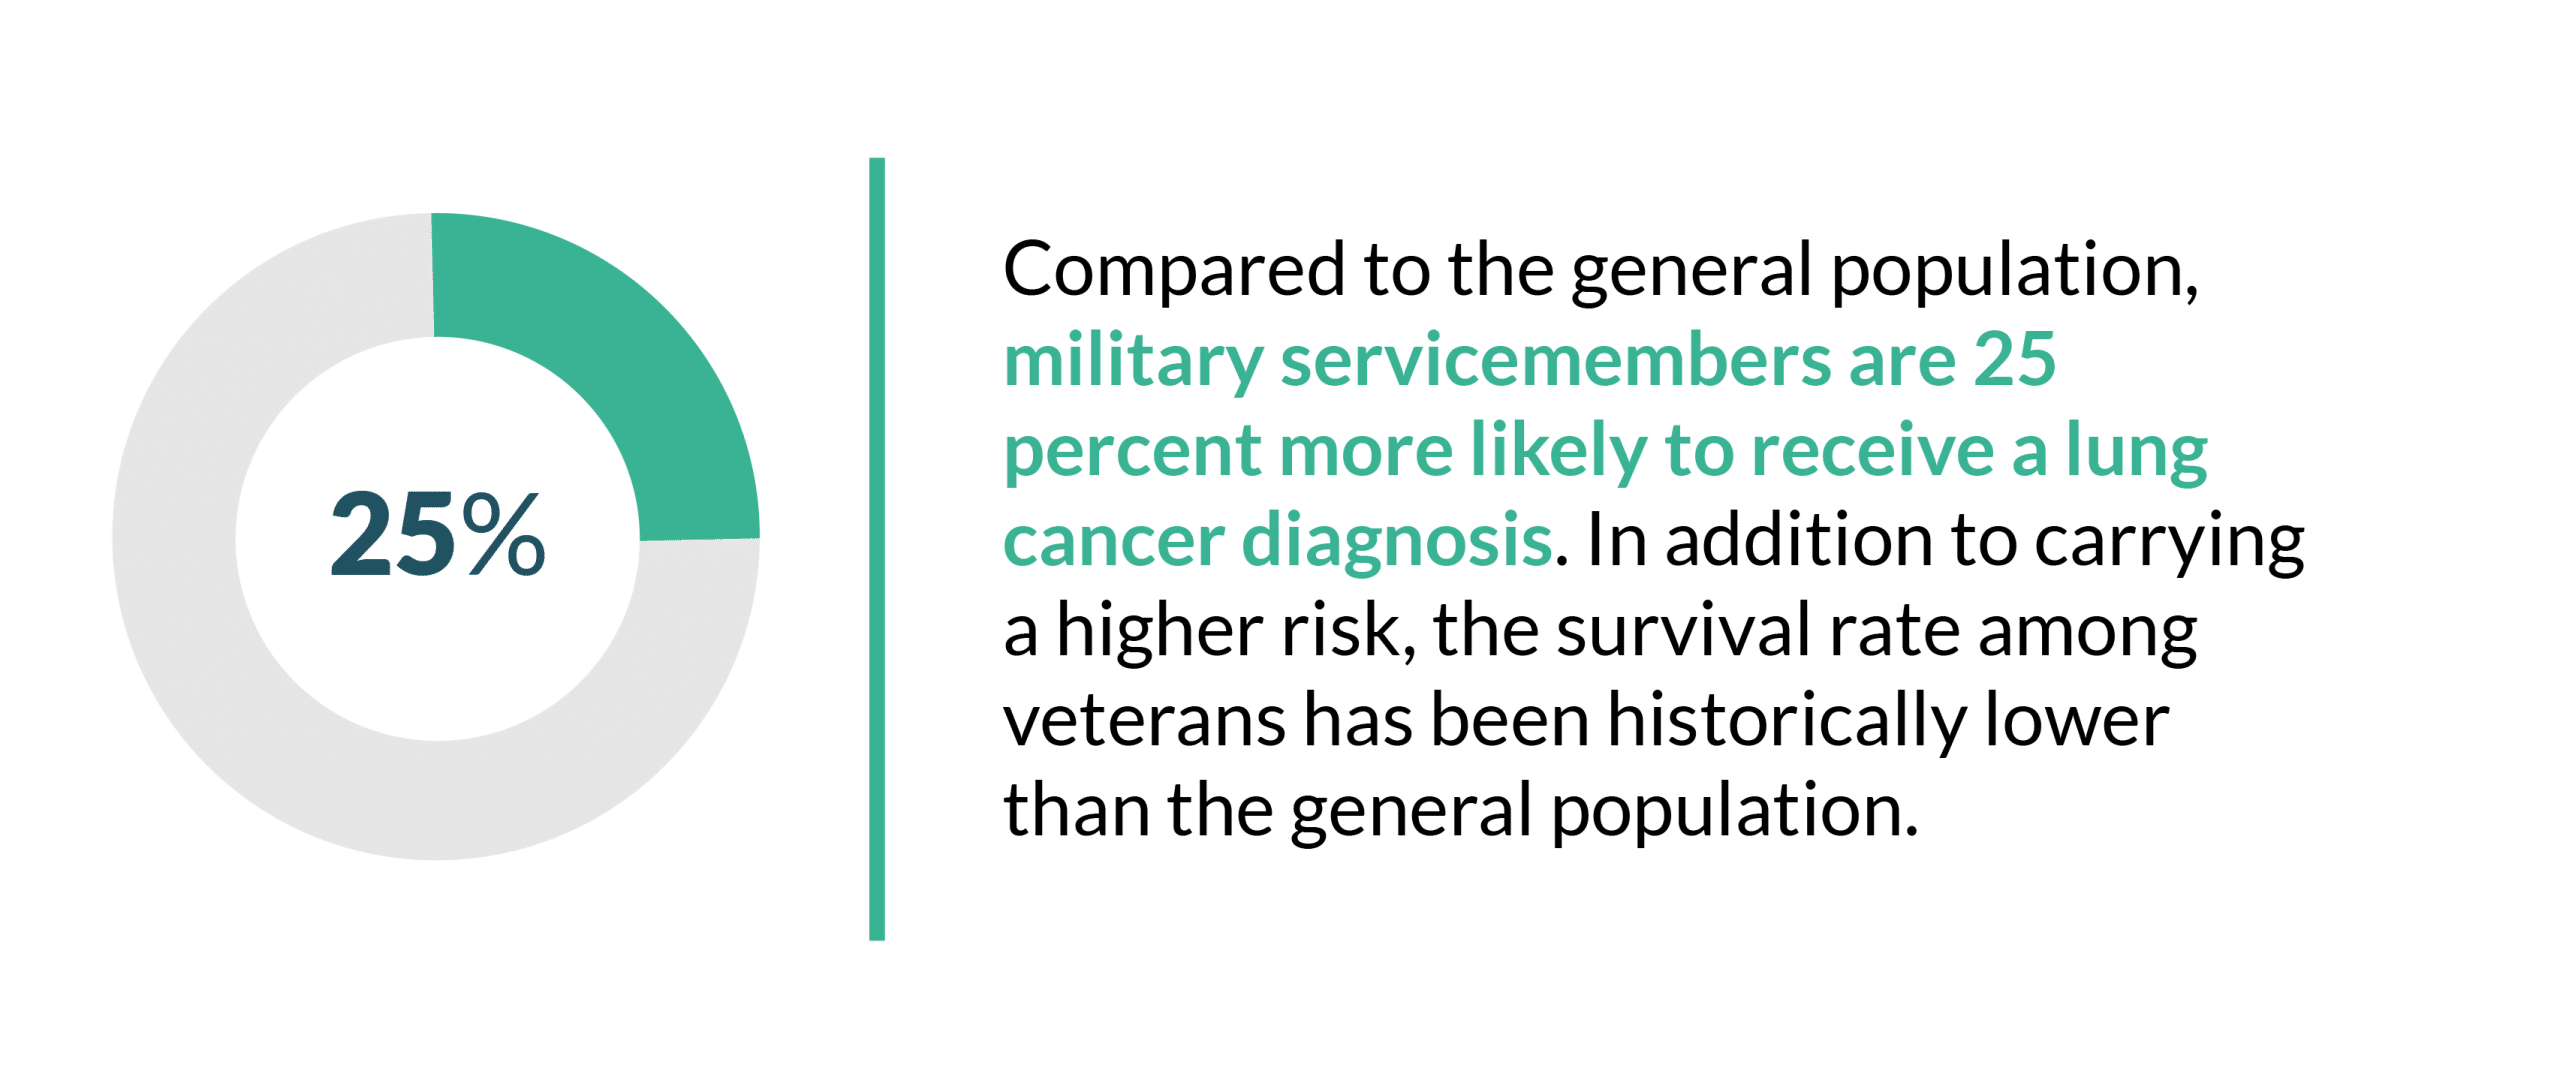 This is an image of a graphic explaining that military servicemembers are 25% more likely to receive lung cancer.